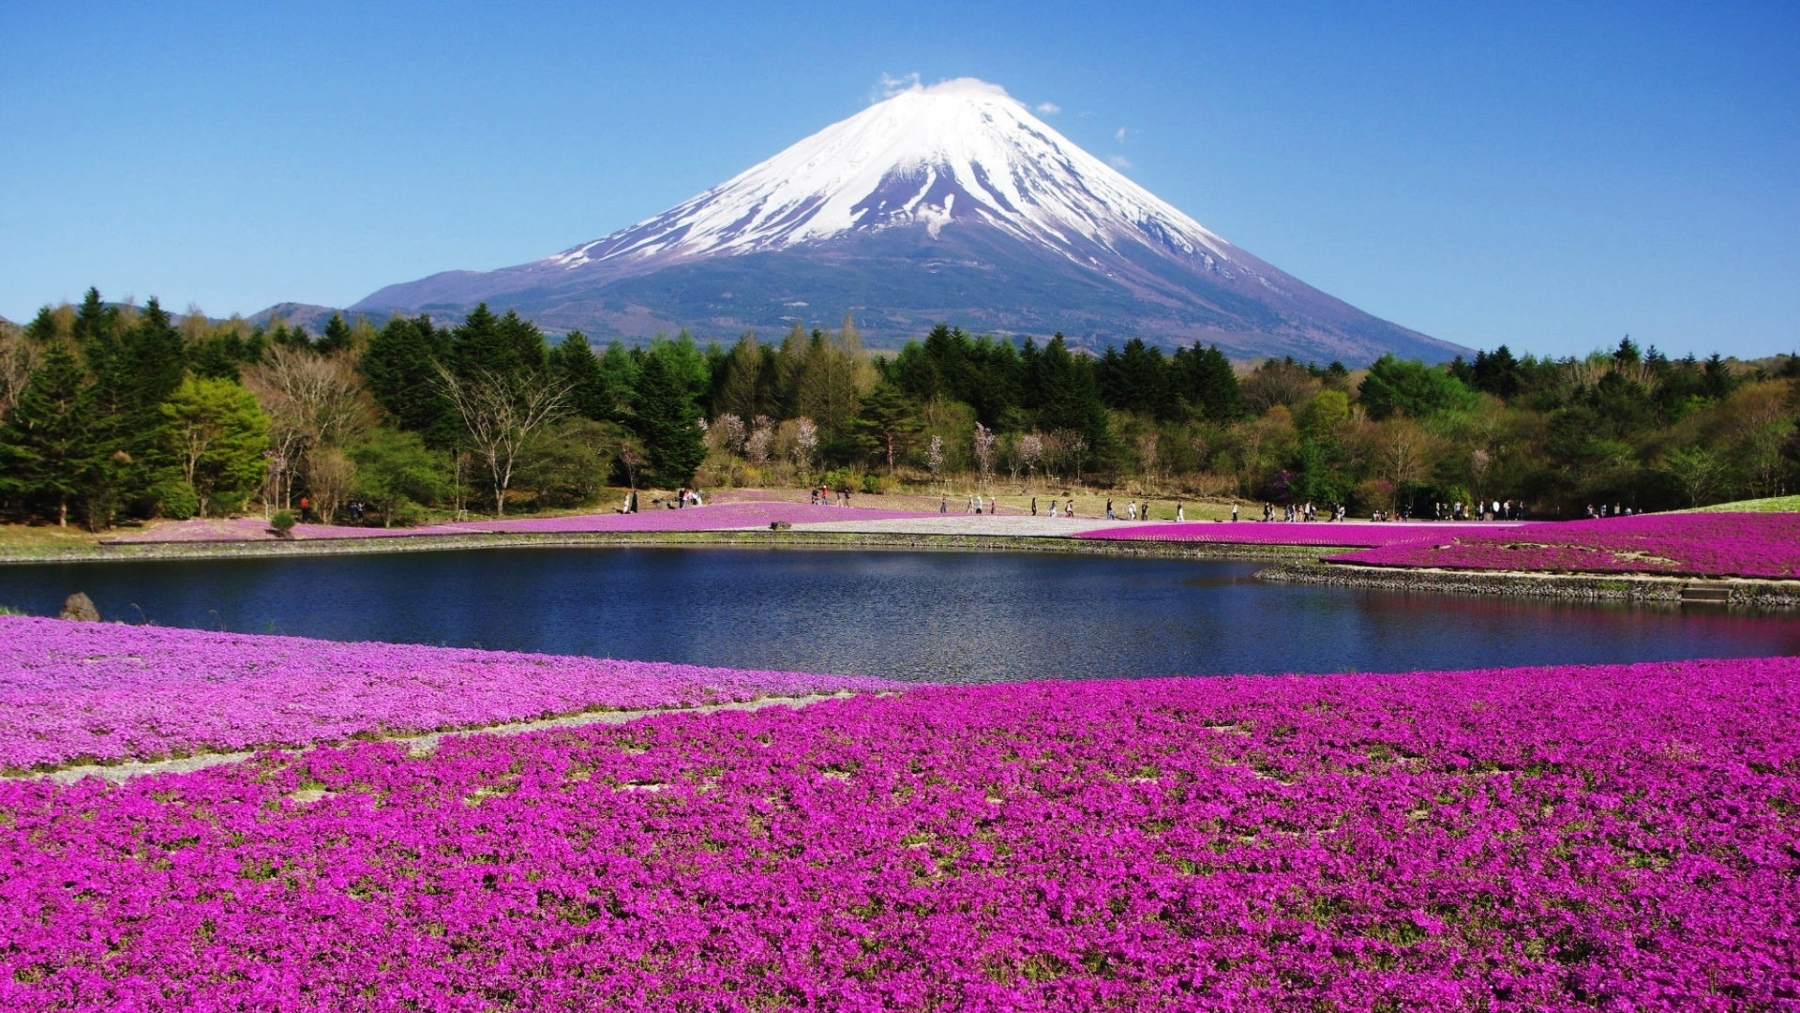 Japan Mount Fuji 2019 Hd Desktop Wallpapers Yl Computing